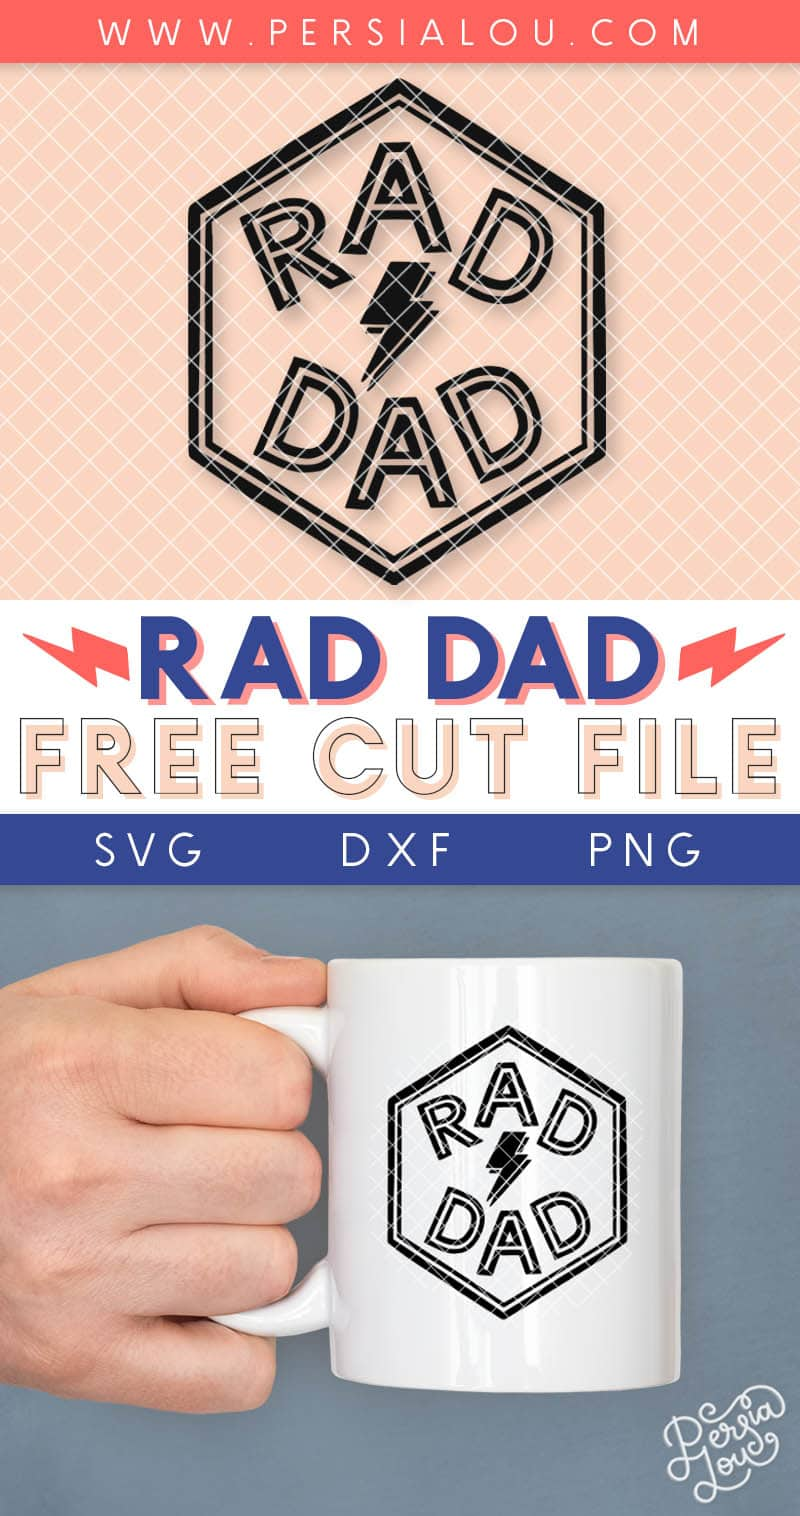 rad dad svg cut file pin image with rad dad hexagon design and image of design on mug